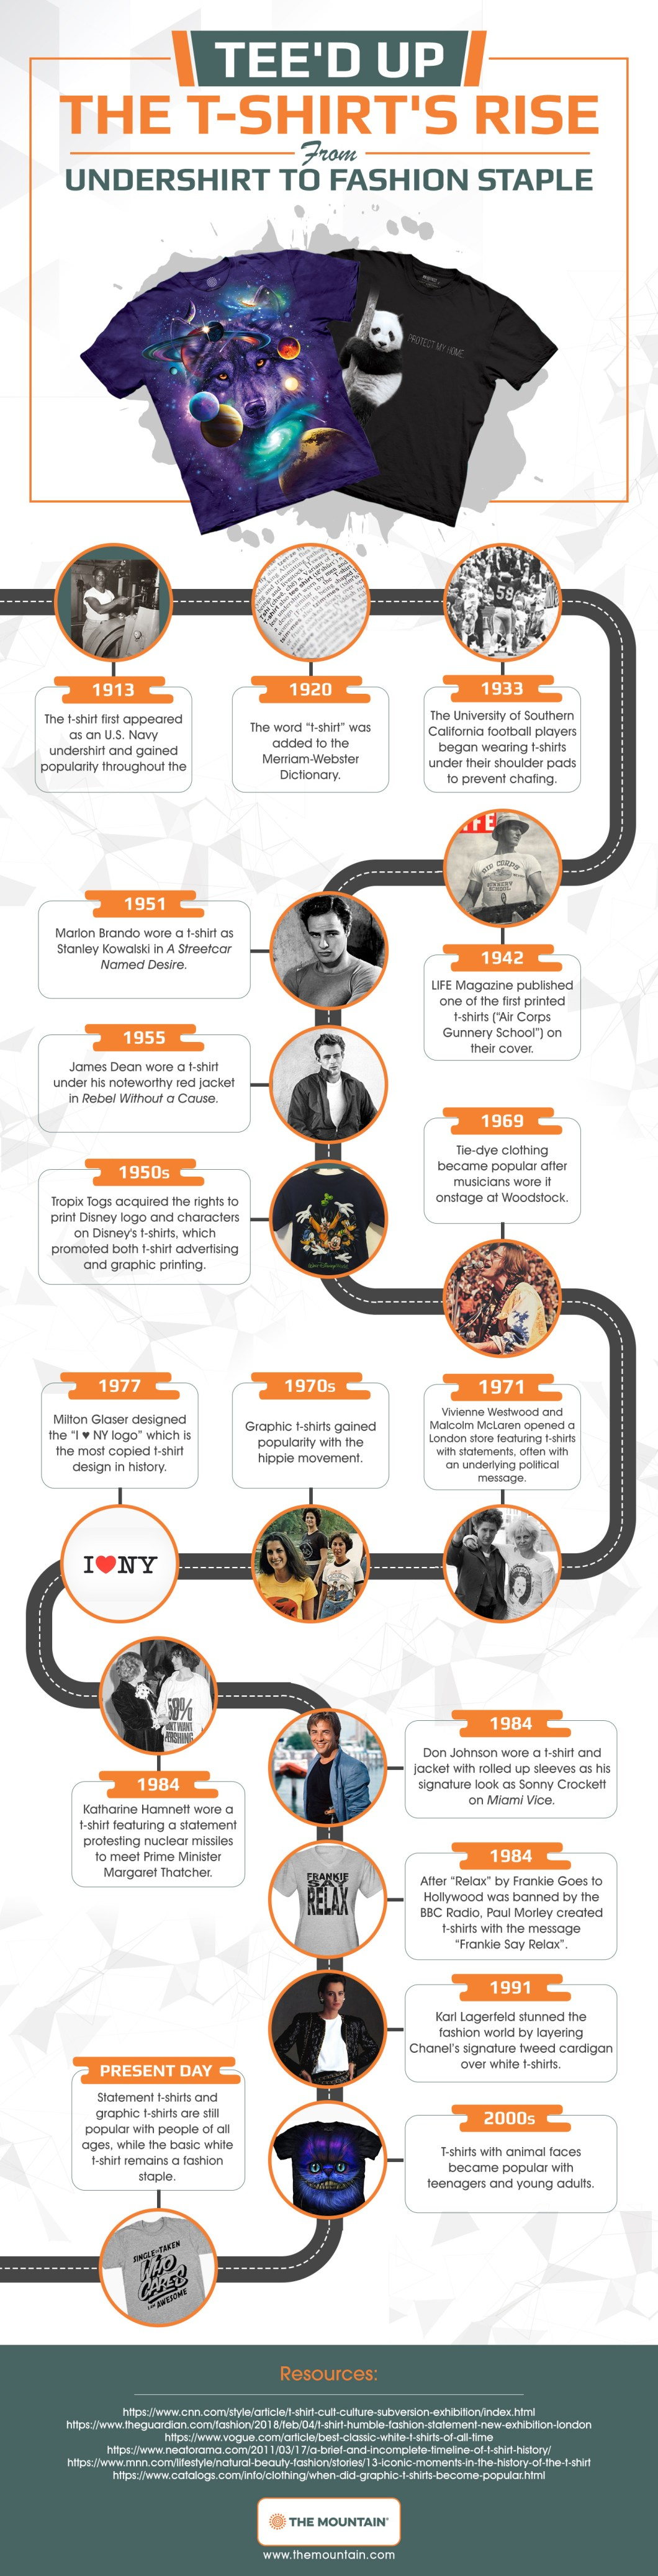 The Reinvention of the T-Shirt: From Undershirt to Fashion Statement - Infographic